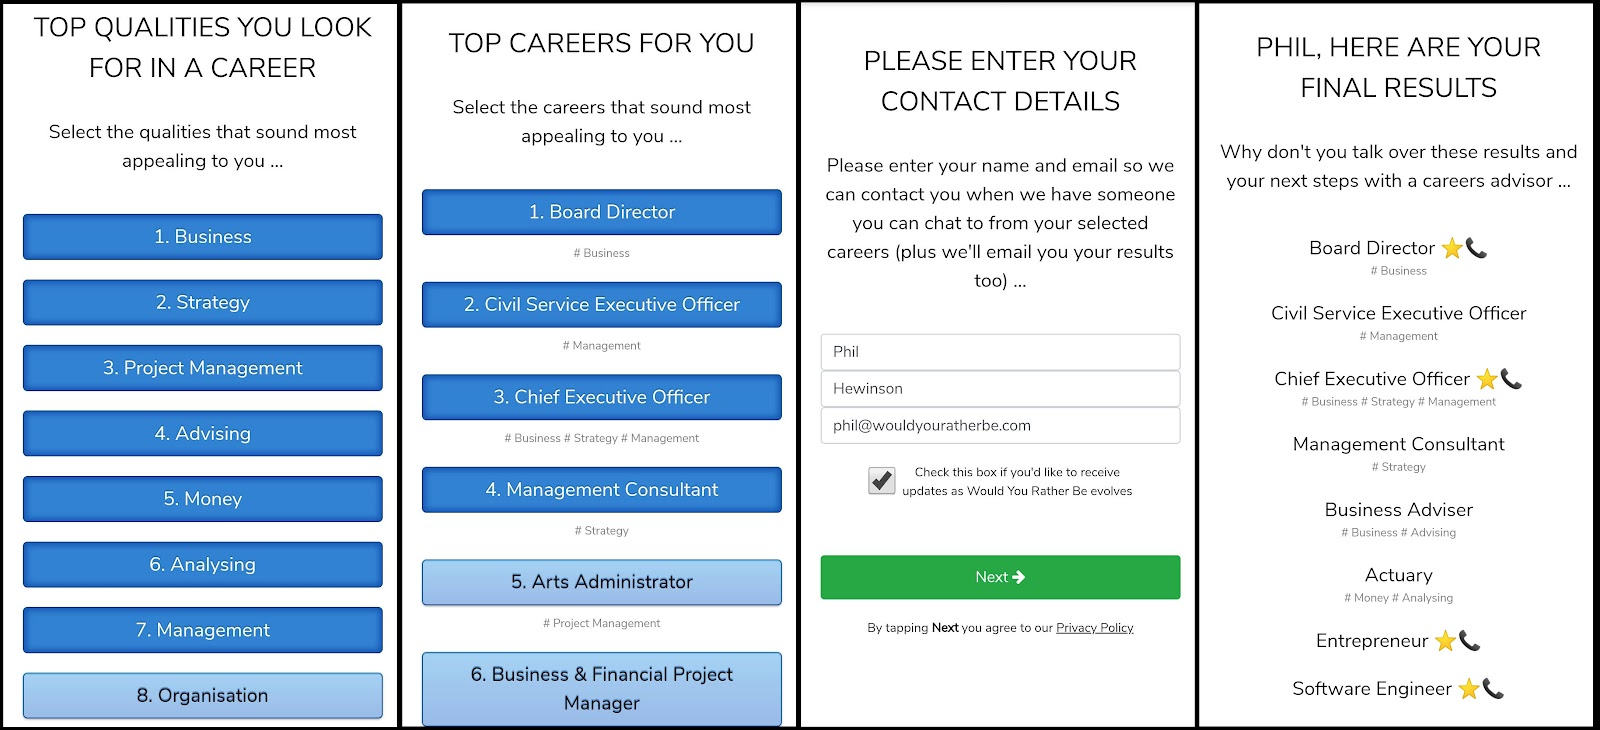 Screenshots of the final screens in the app - top qualities you look for in a career, top careers for you, entering contact details and final resuilts